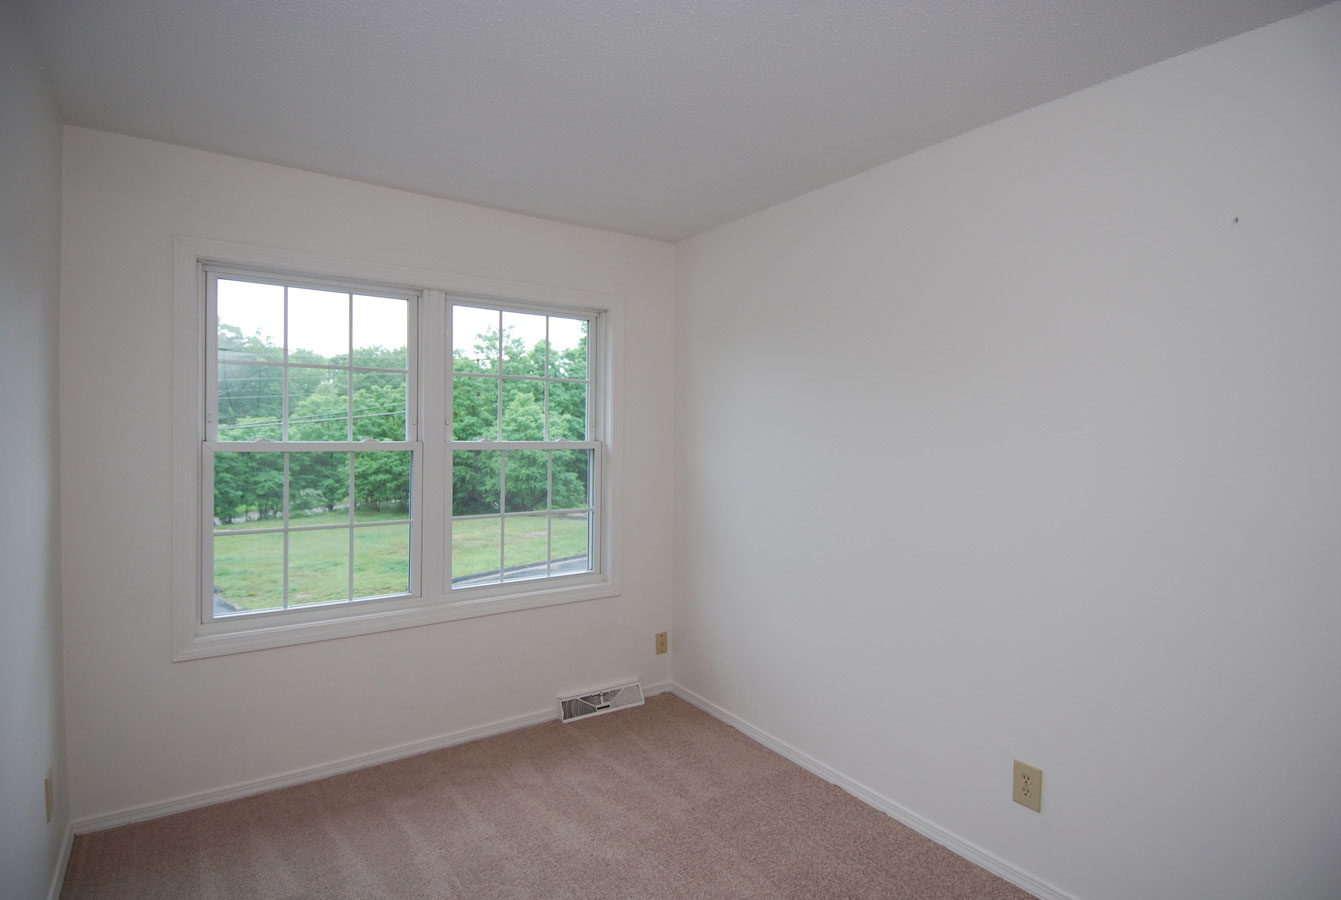 Bedroom - Townhouse Unit at Wellington Terrace, Manchester, NH